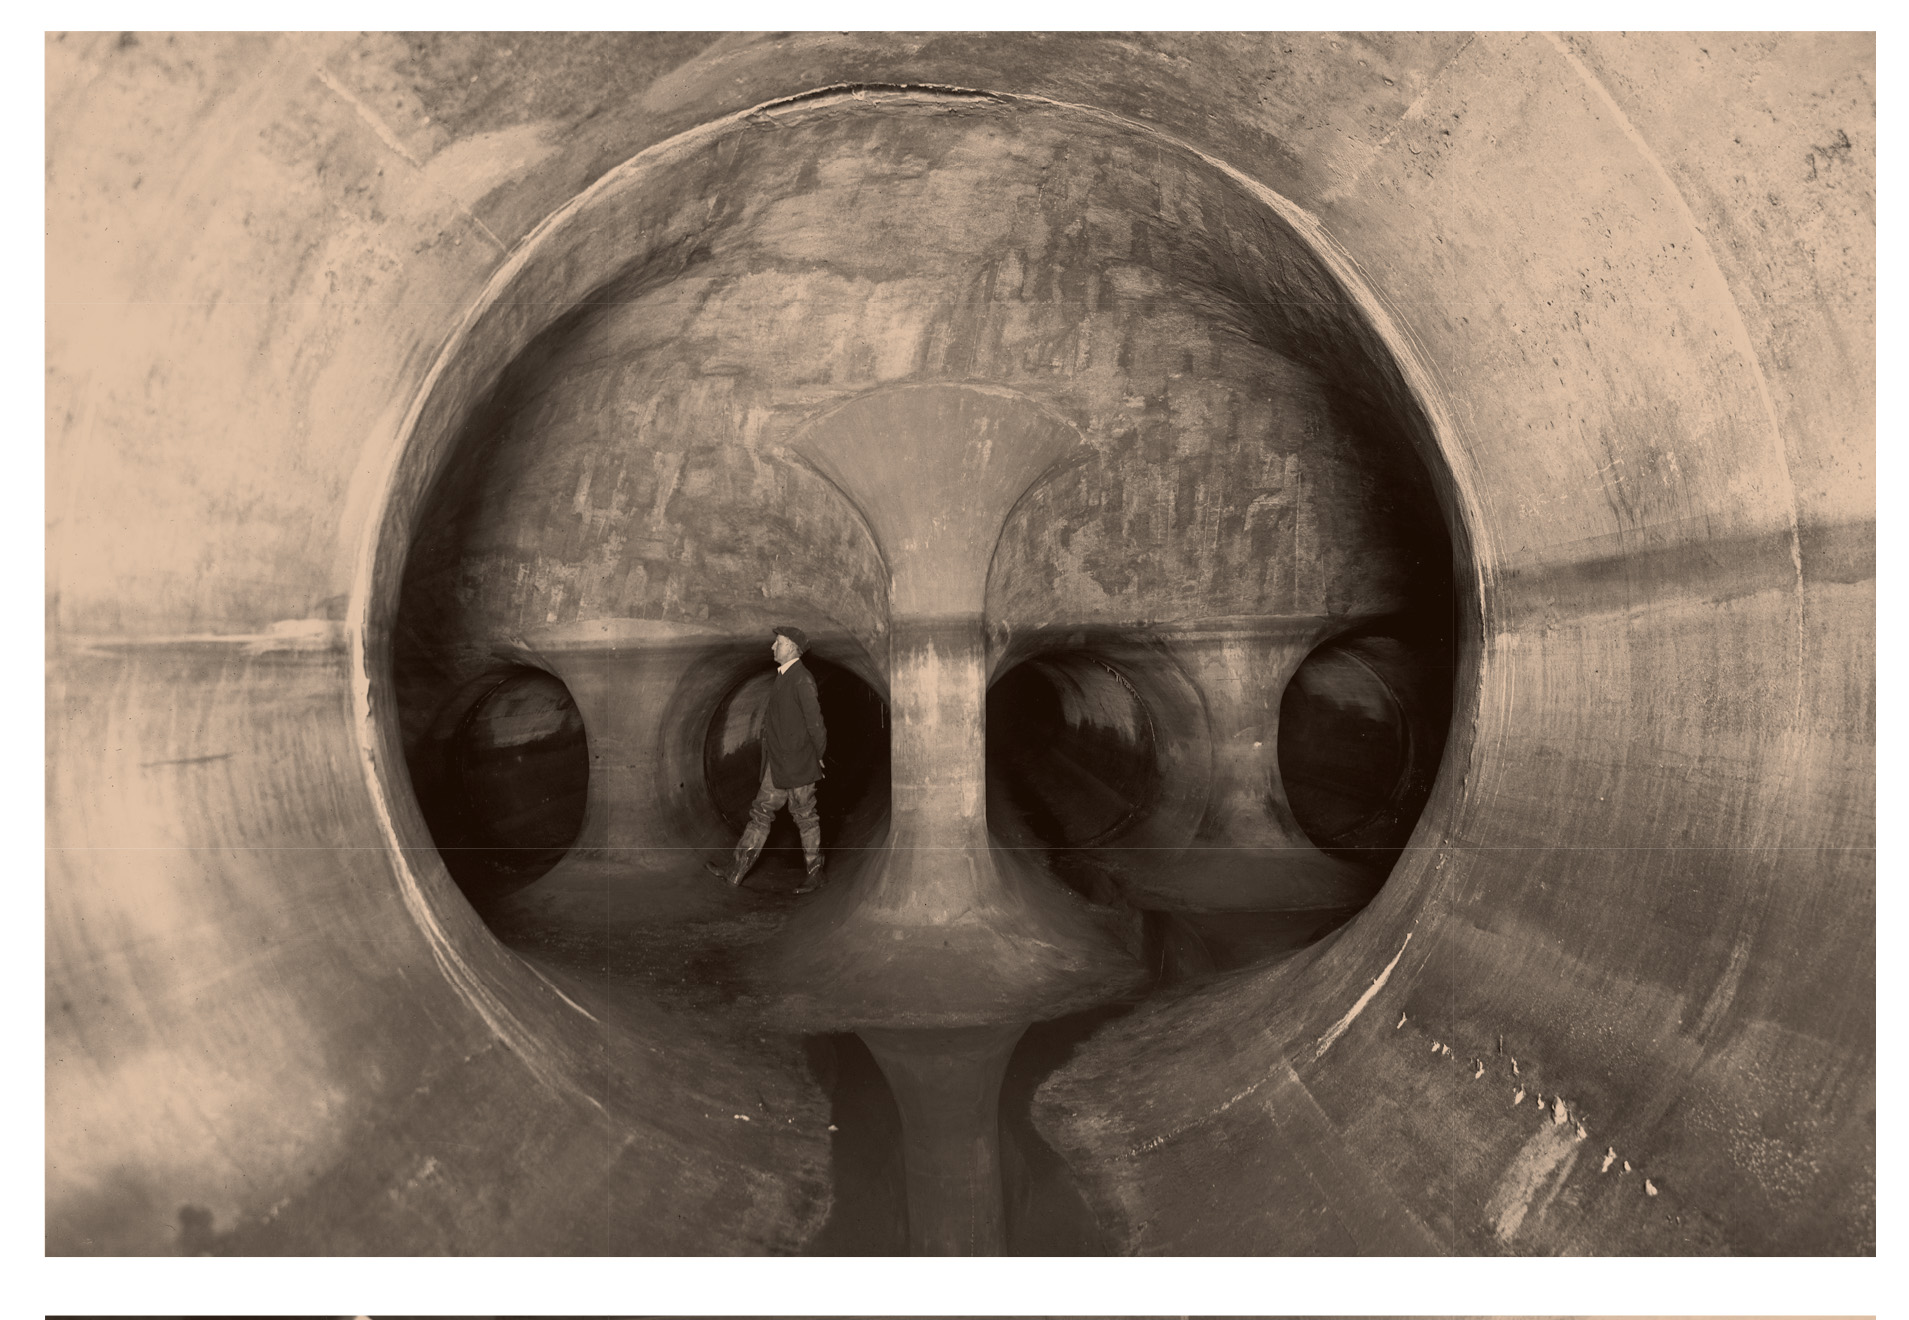 Construction of interceptor sewers in the 1920s—New Jersey, U.S. The main interceptor is 22 miles long and connects to 18 miles of branch sewers.